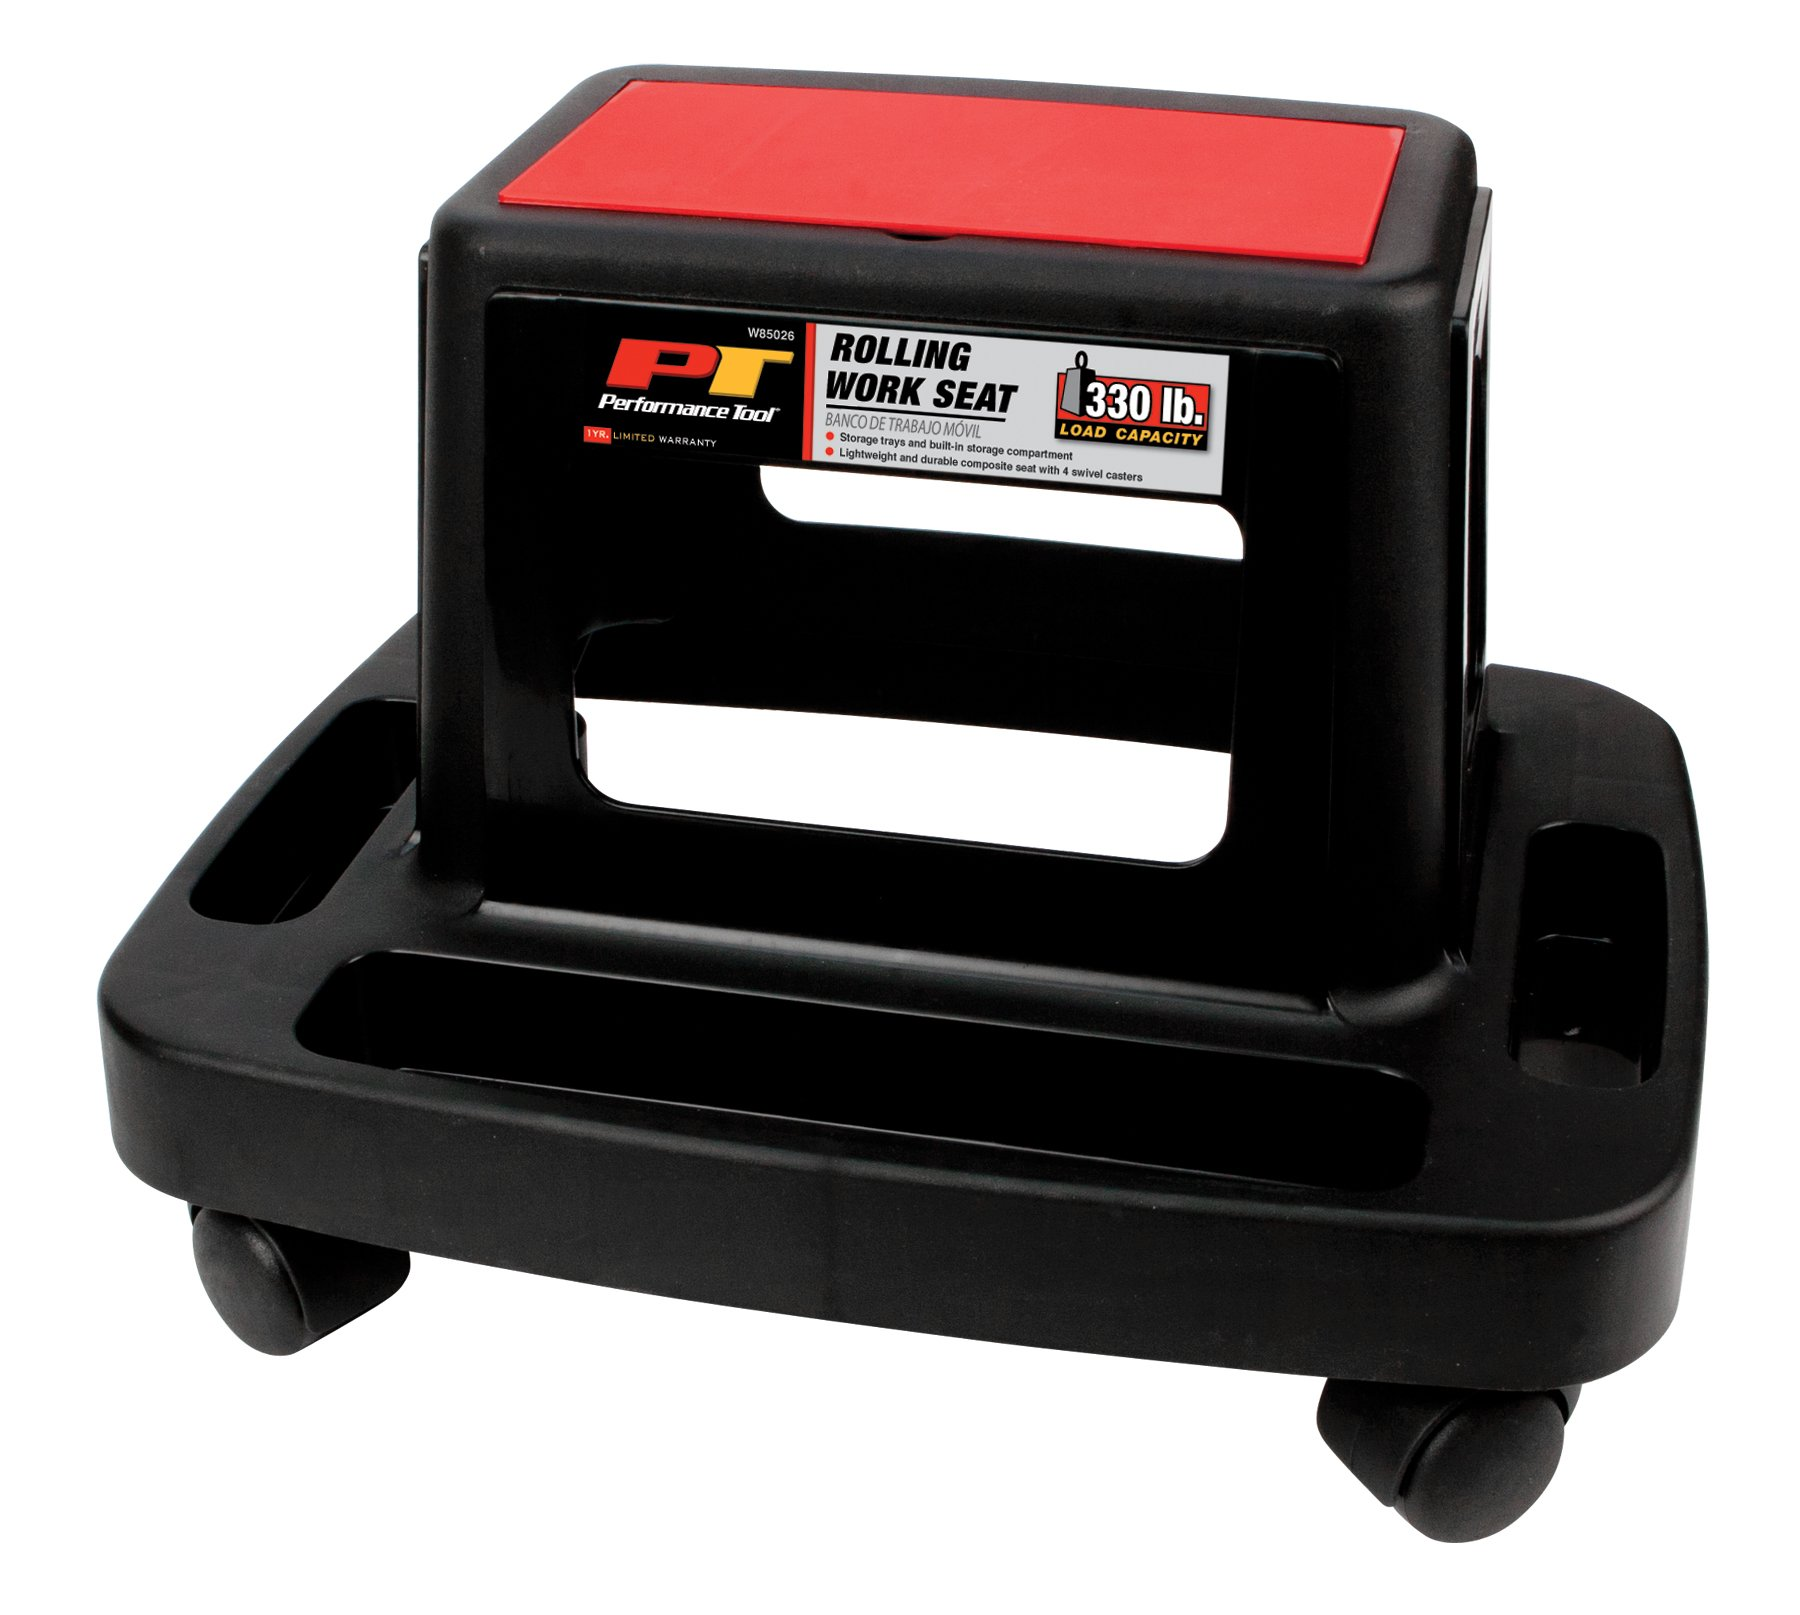 Performance Tool W85026 Rolling Work Seat with Storage Tray